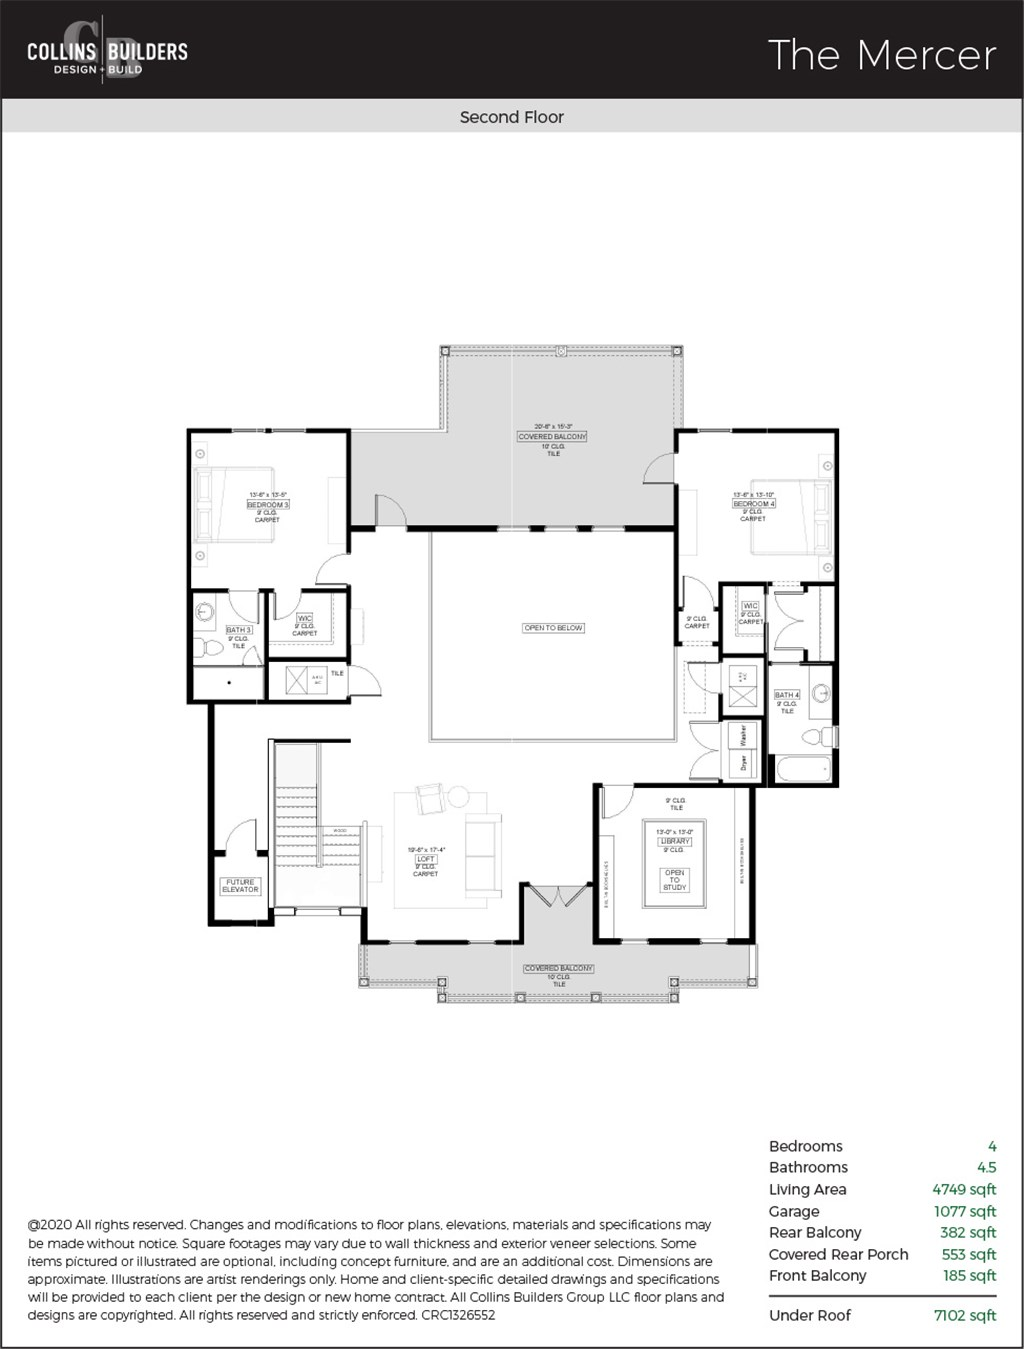 Floor Plan The Mercer Second Floor